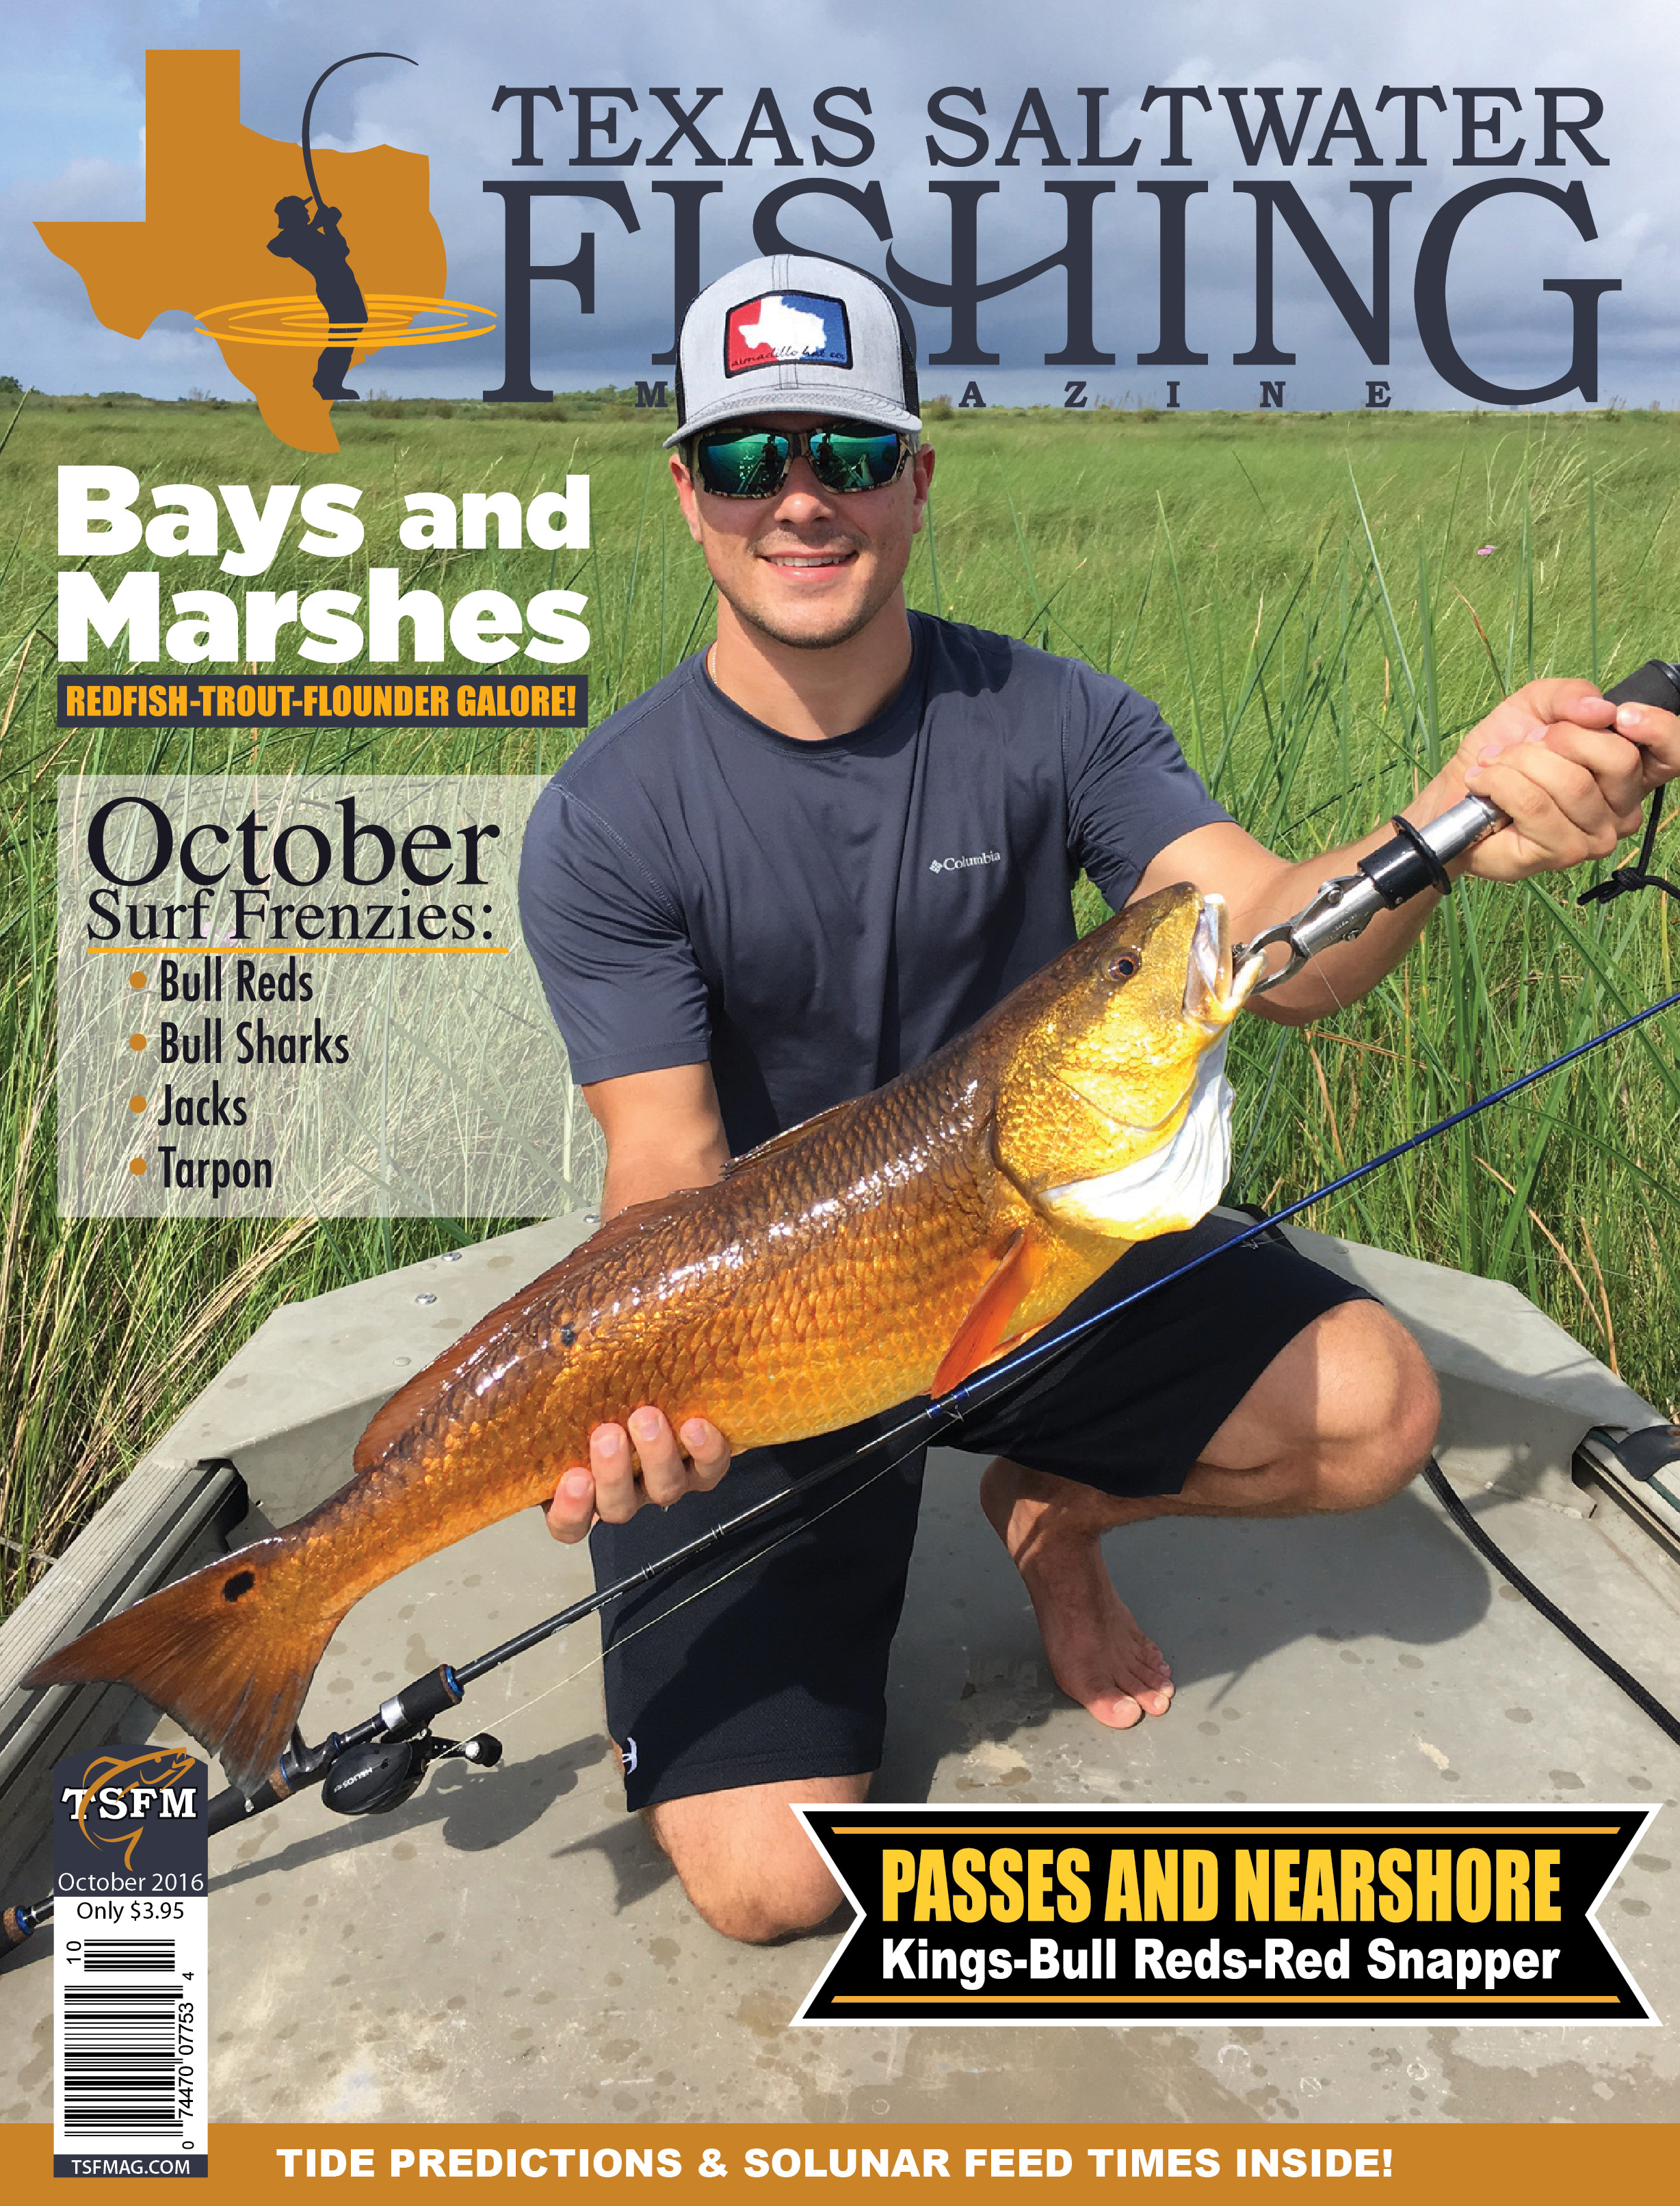 Texas saltwater fishing magazine october 2016 for Texas saltwater fishing magazine